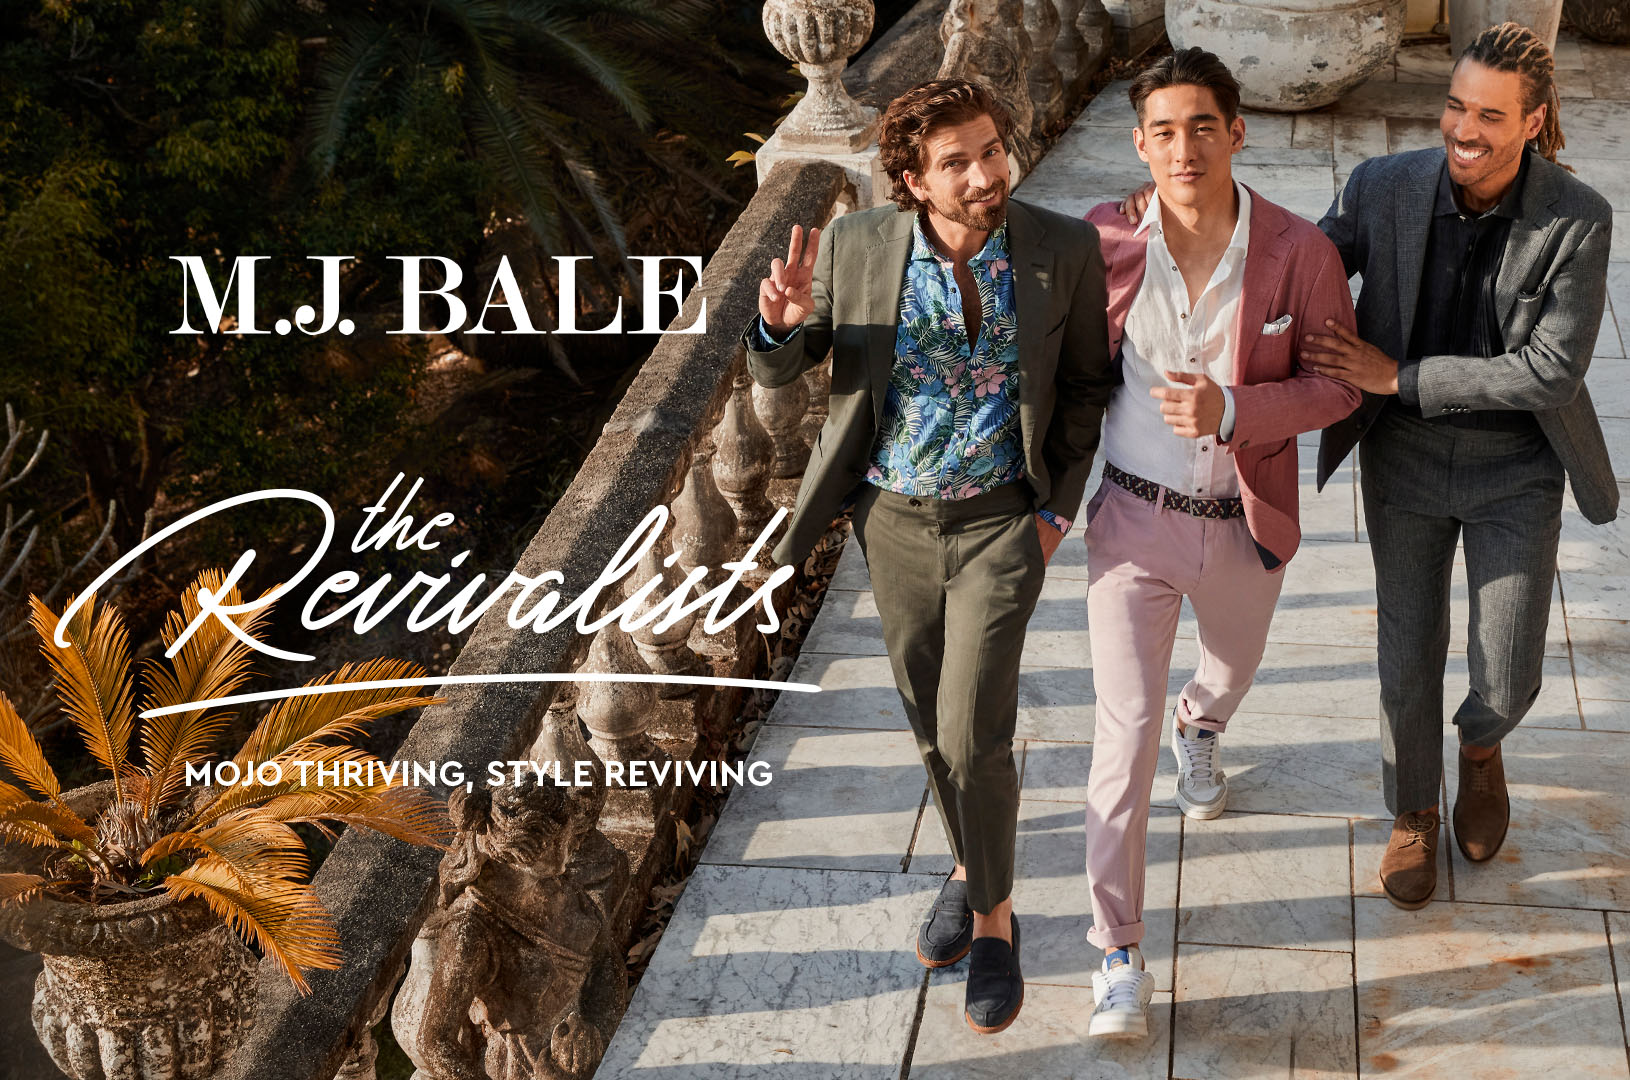 M.J. Bale: The Revivalists' Spring Collection